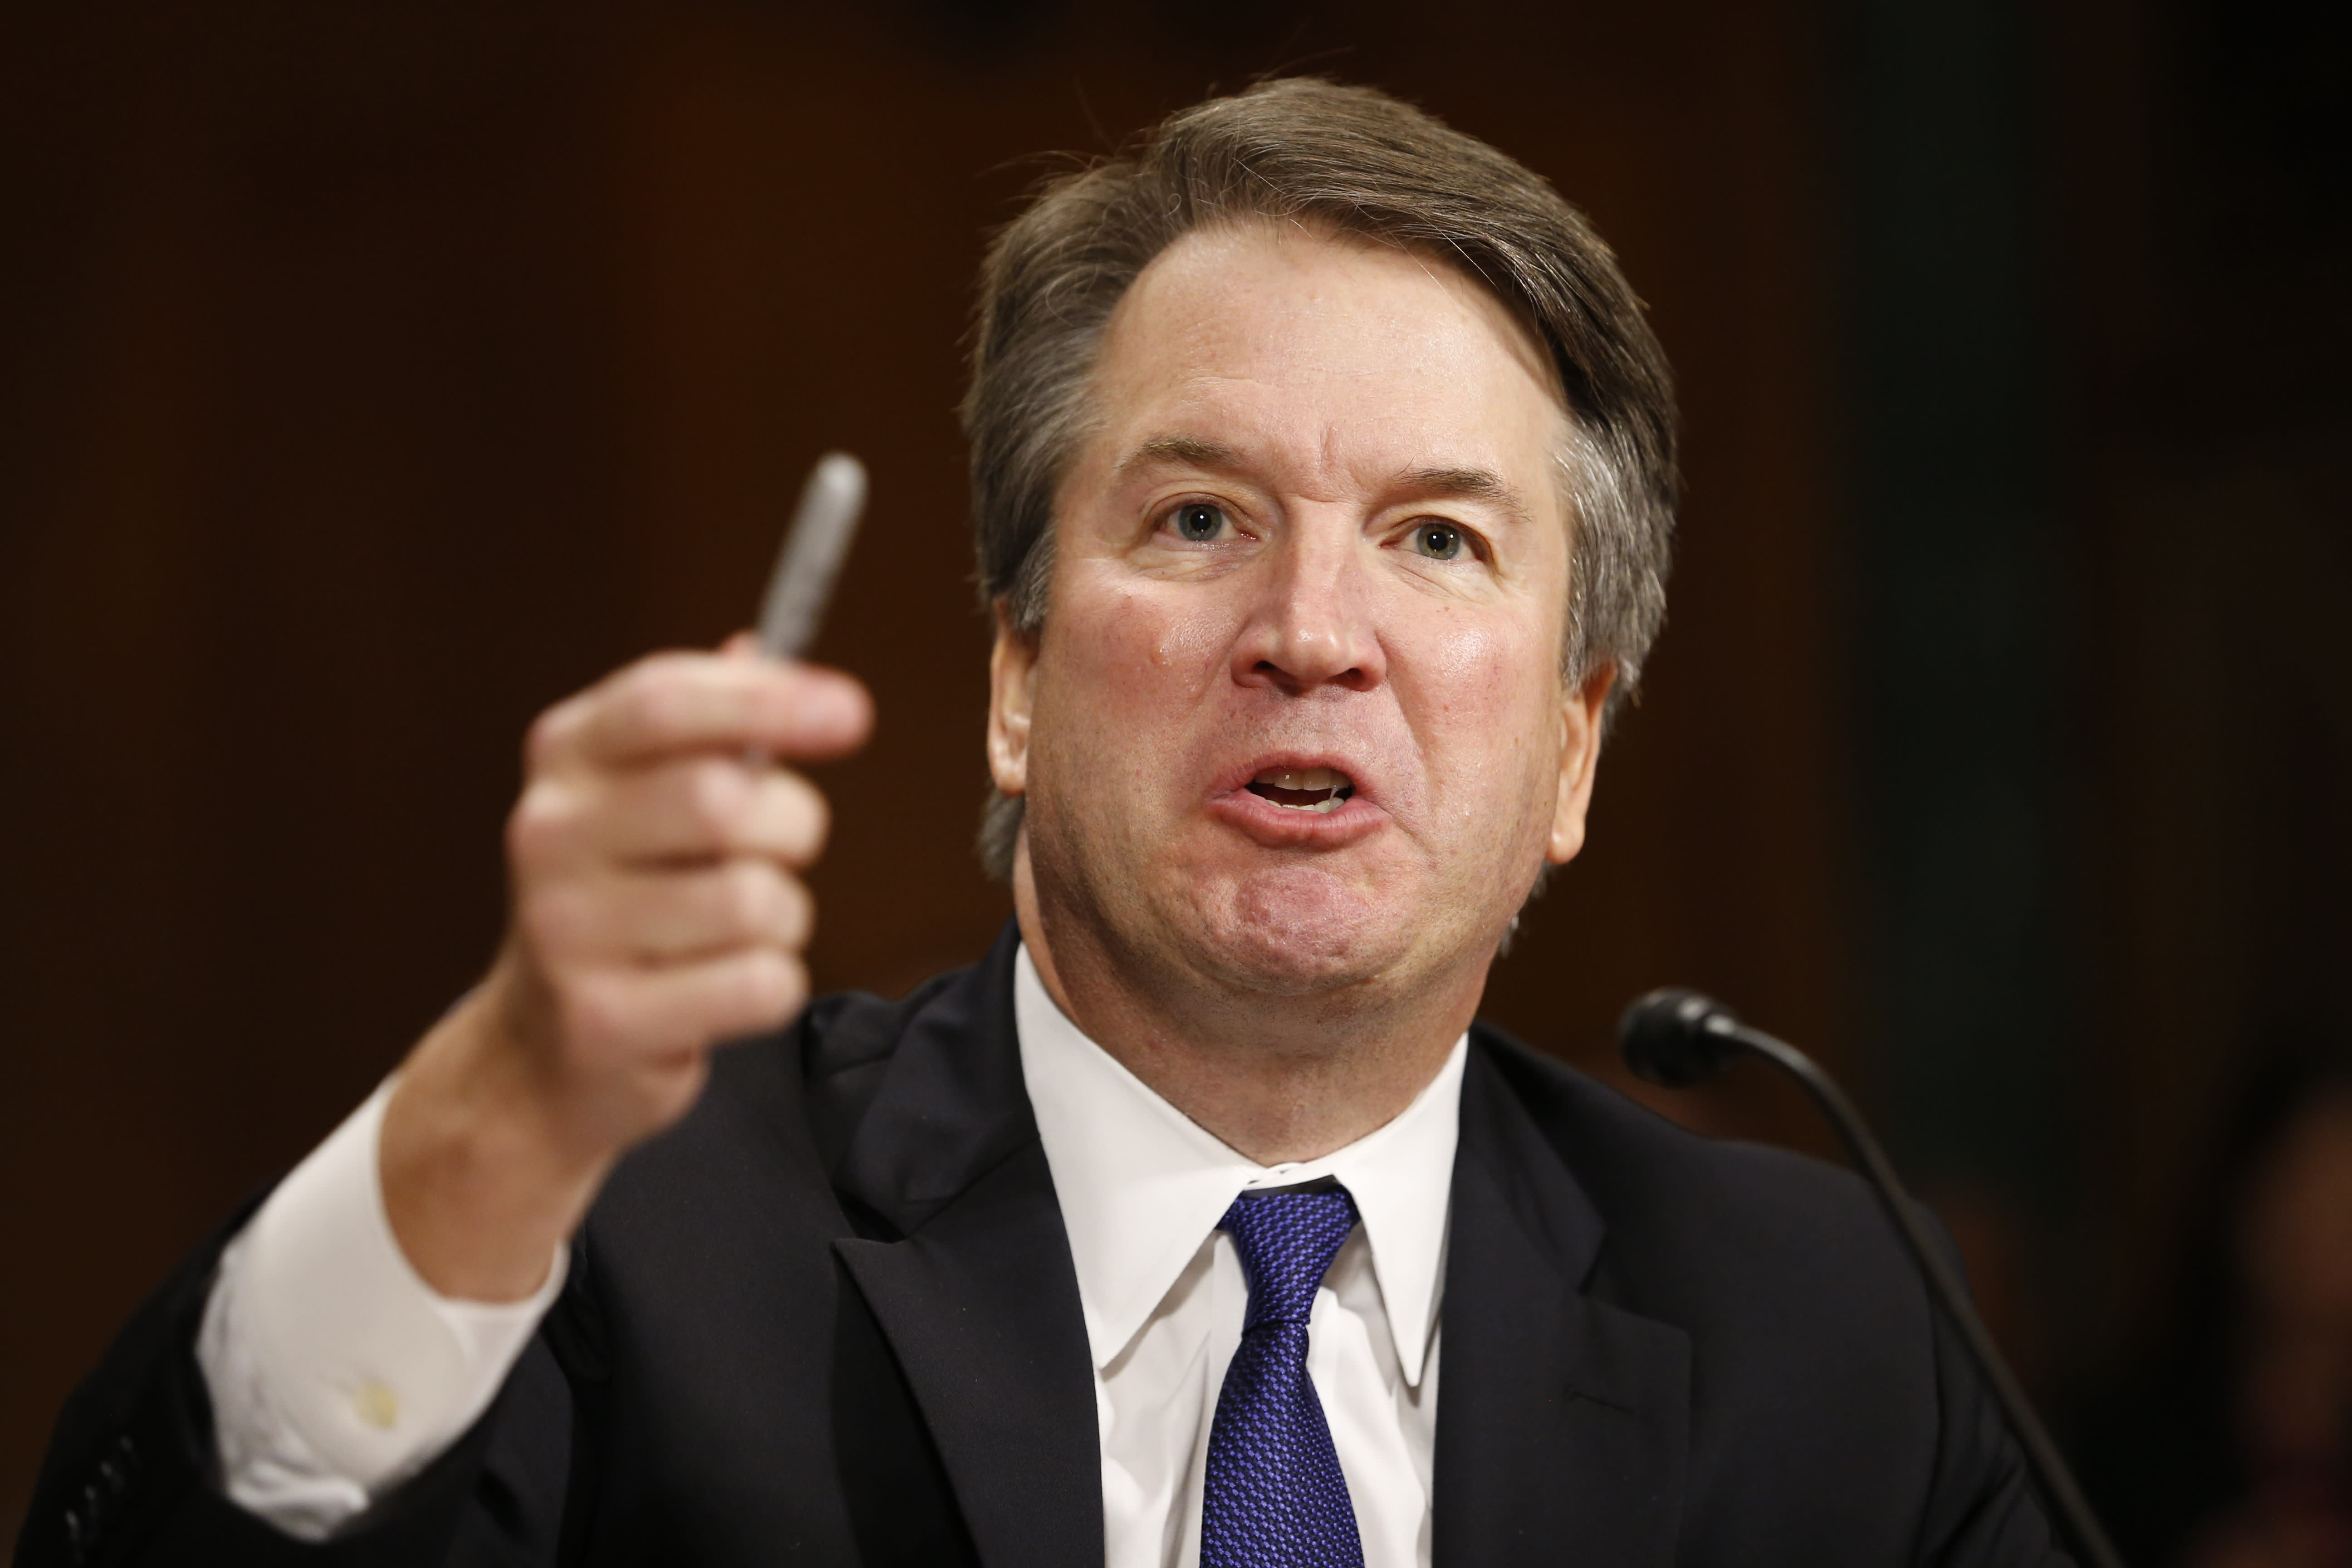 c38b71938e6 Facebook employees are reportedly outraged at exec appearing at Kavanaugh  hearing